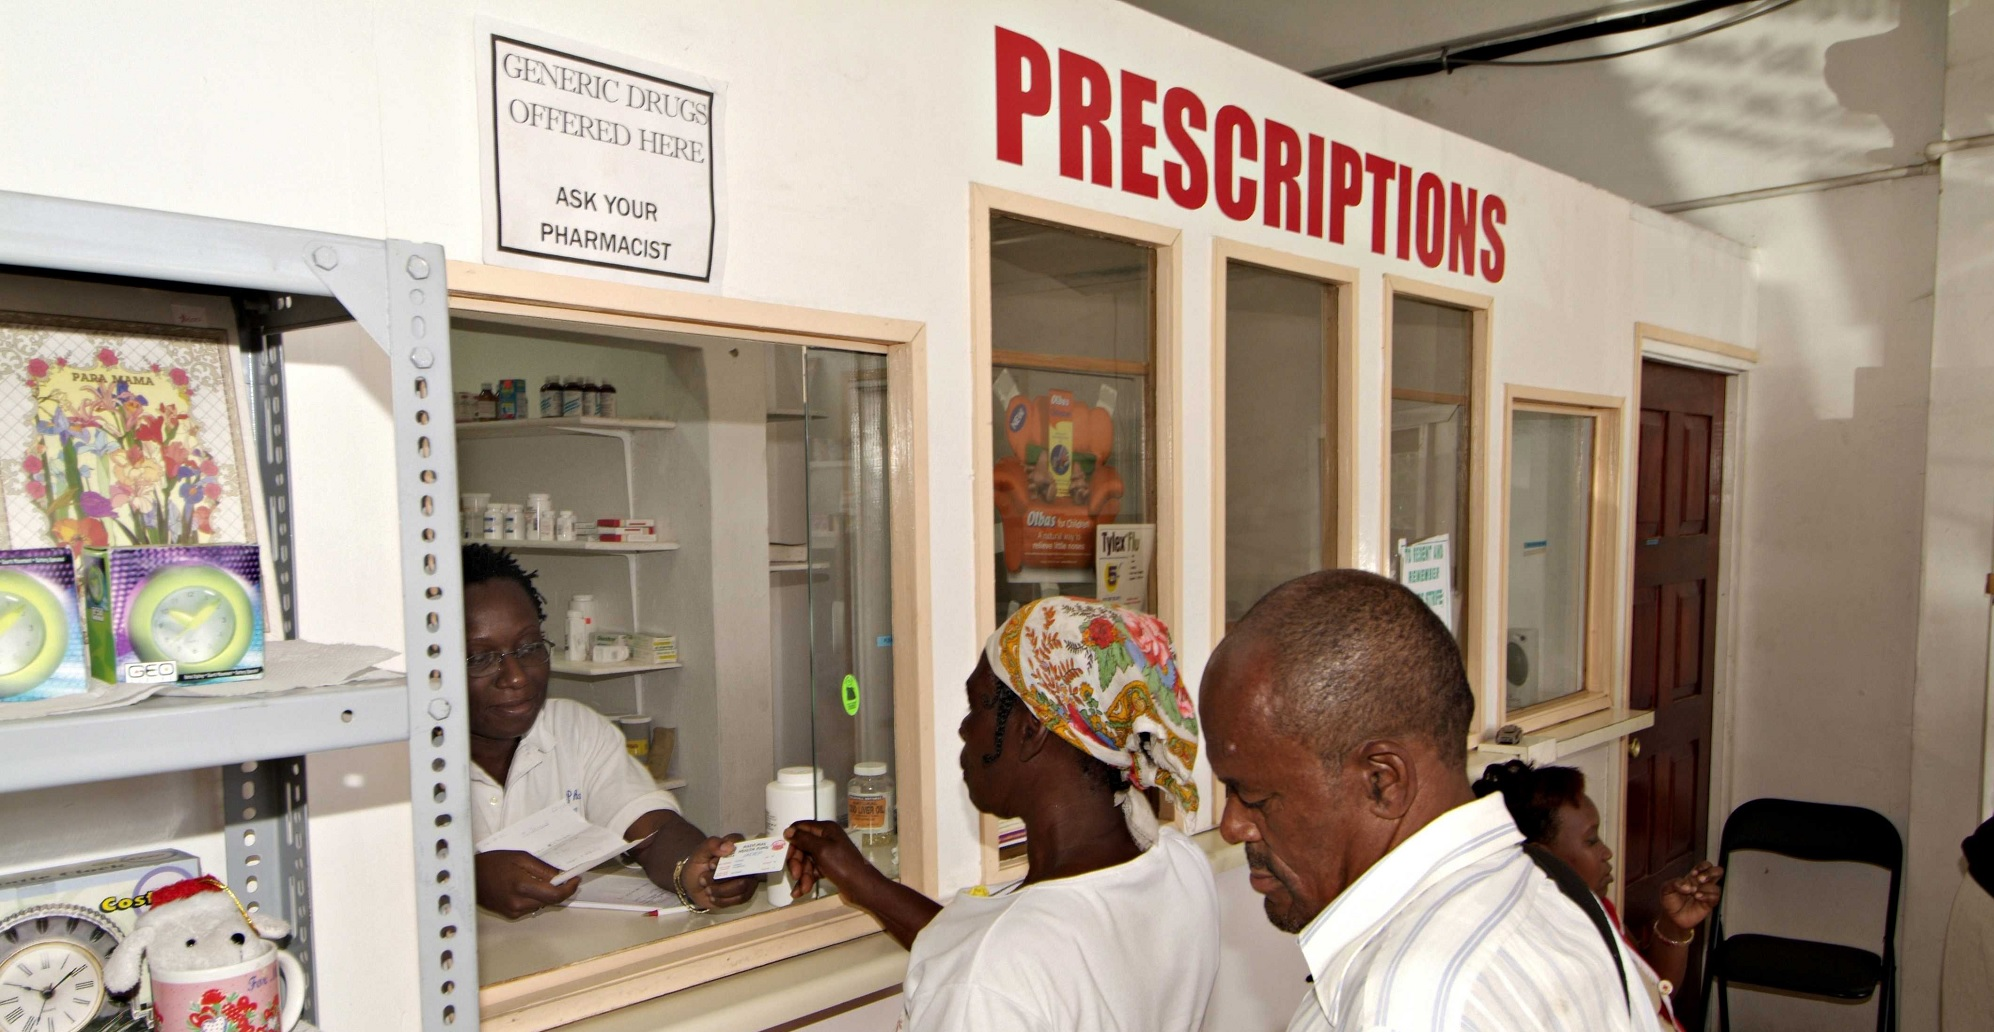 Older people in Jamaica are entitled to subsidised drugs for common age-related illnesses, but many pharmacies do not participate in the scheme (c) Neil Cooper/HelpAge International